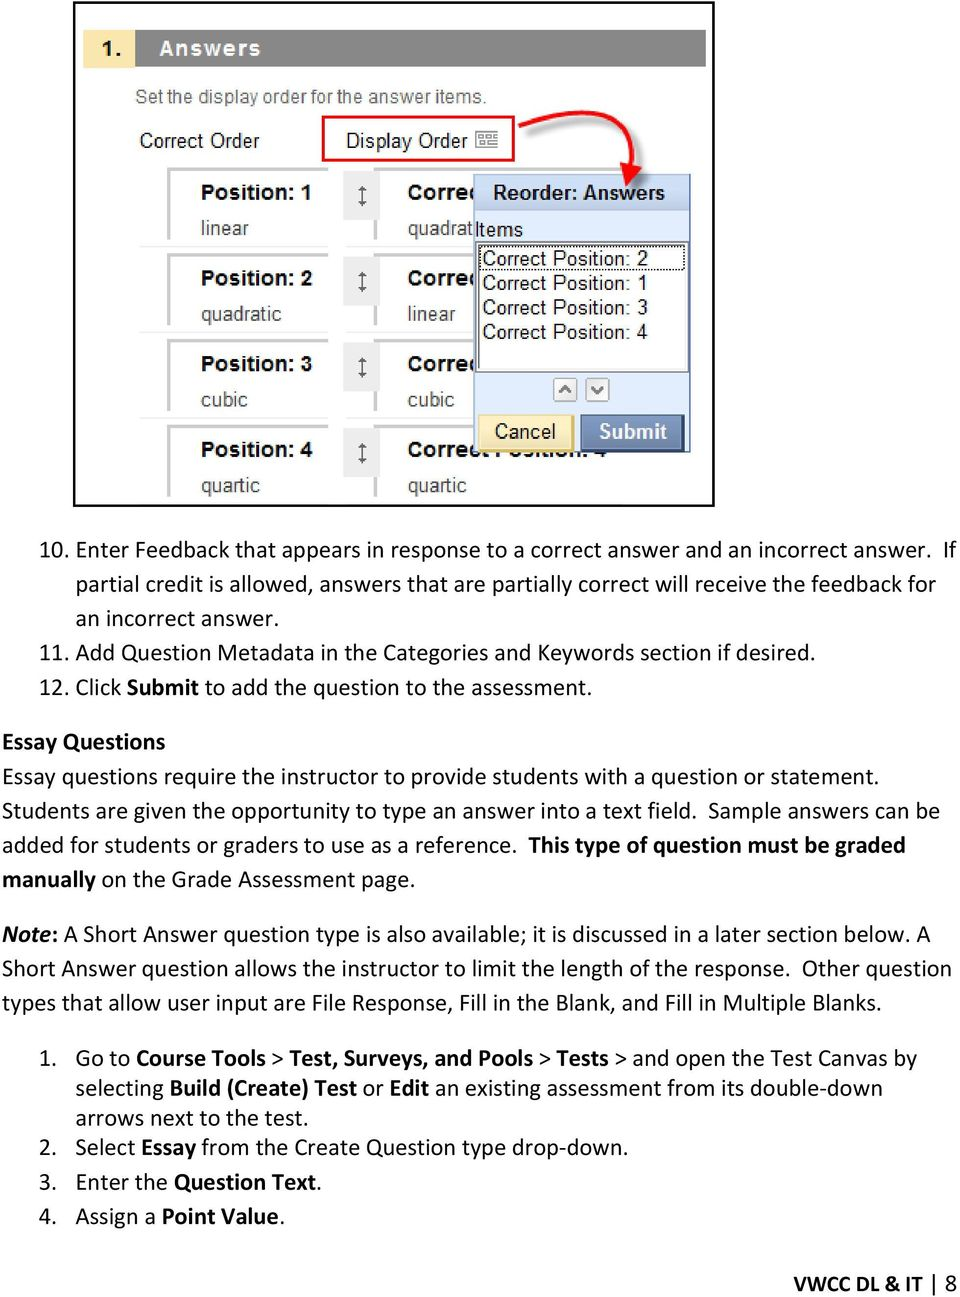 Introduction to Blackboard Test Question Types - PDF